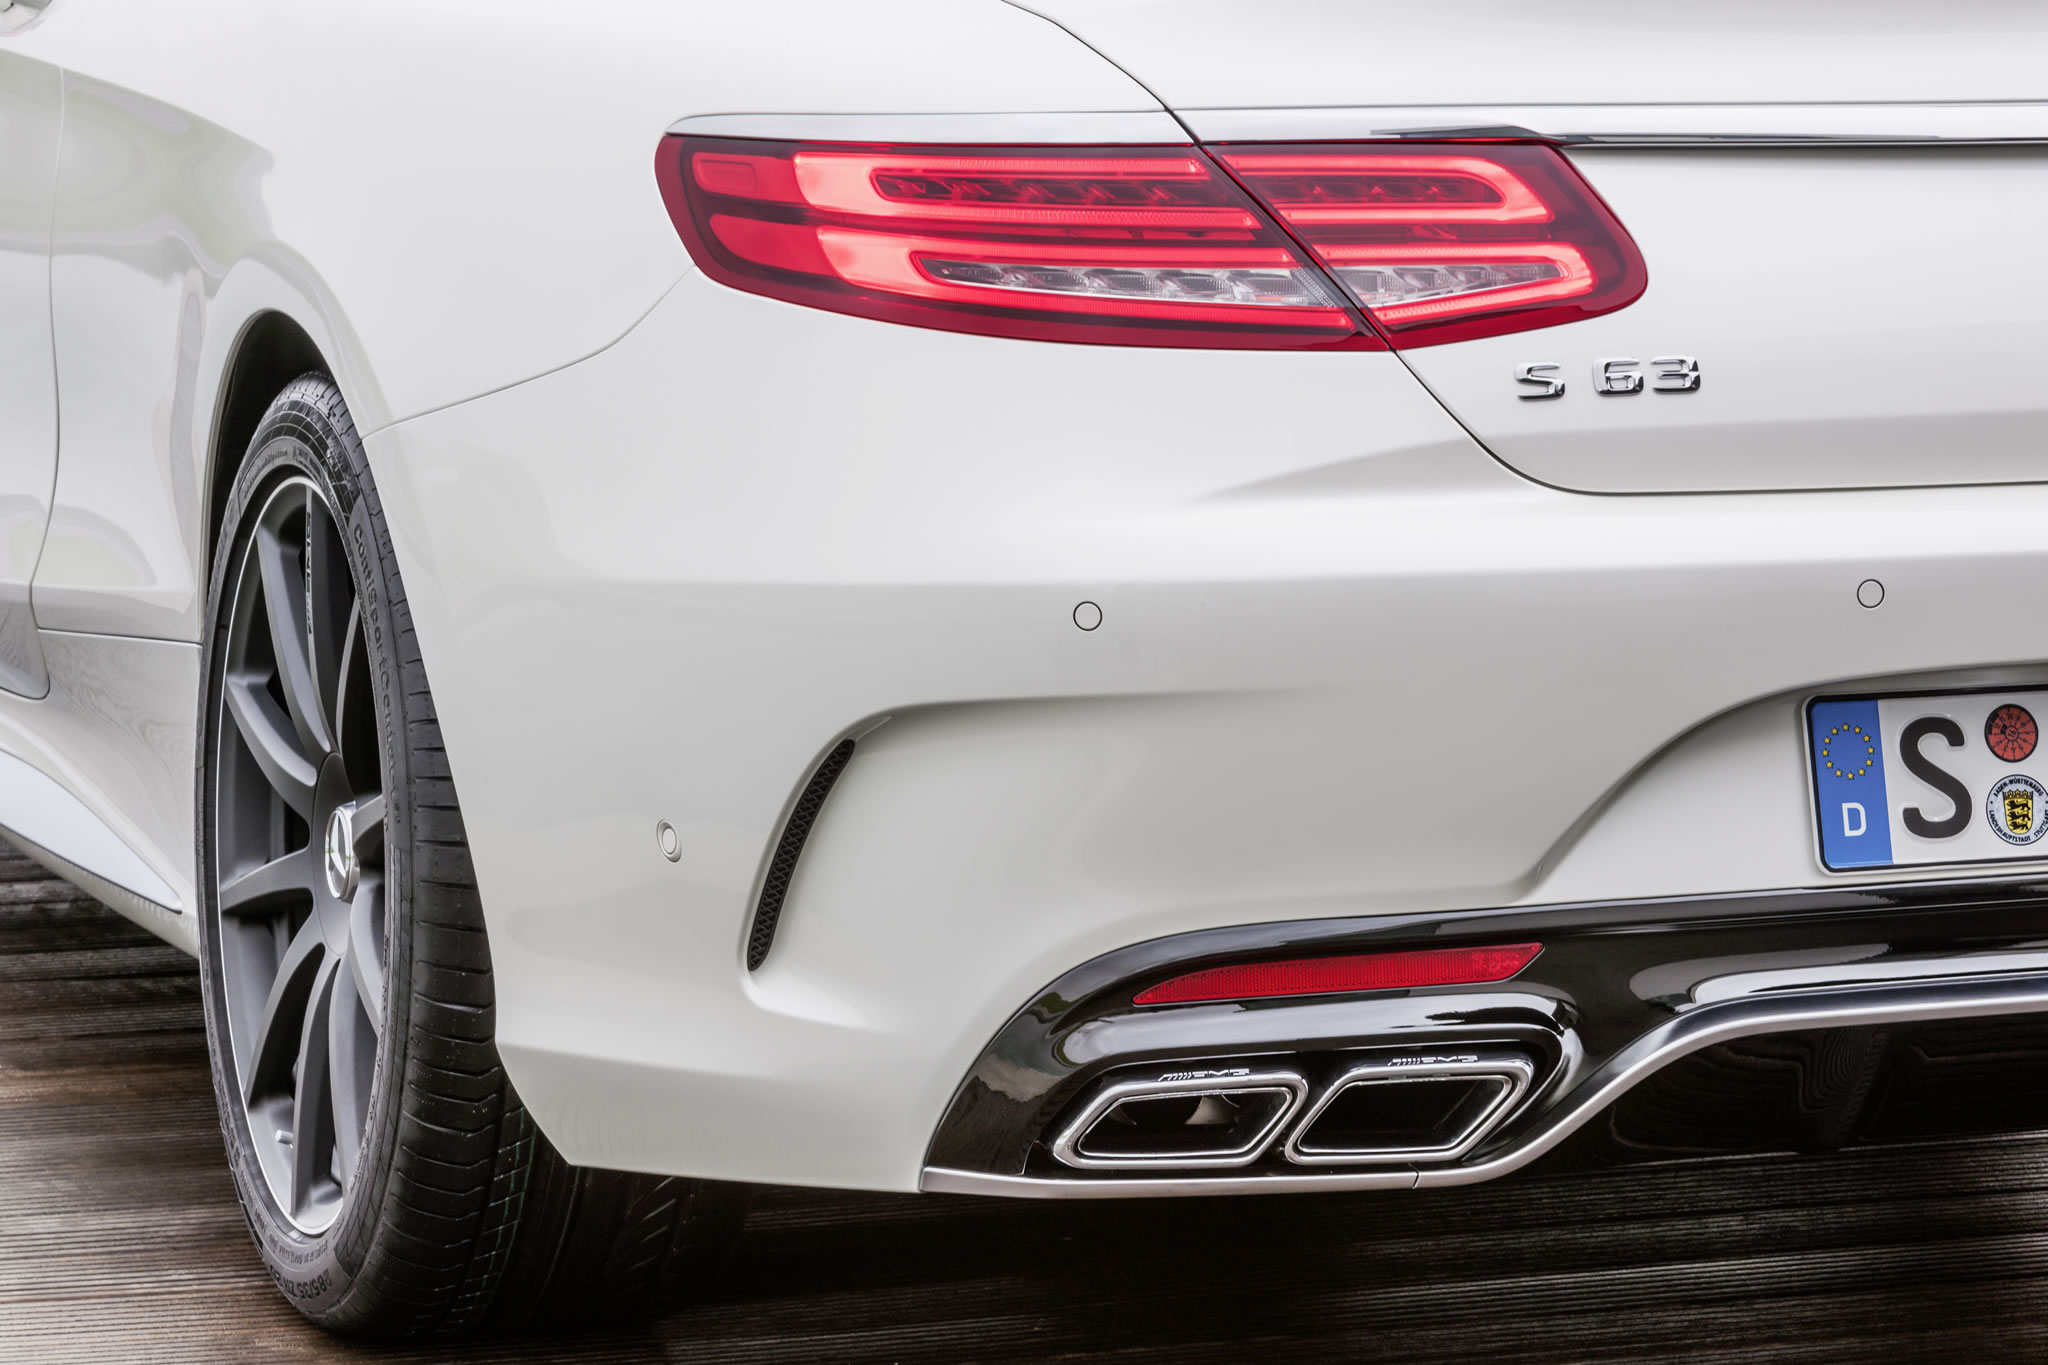 2015 mercedes benz s63 amg coupe detail photo exhaust for 2015 mercedes benz s63